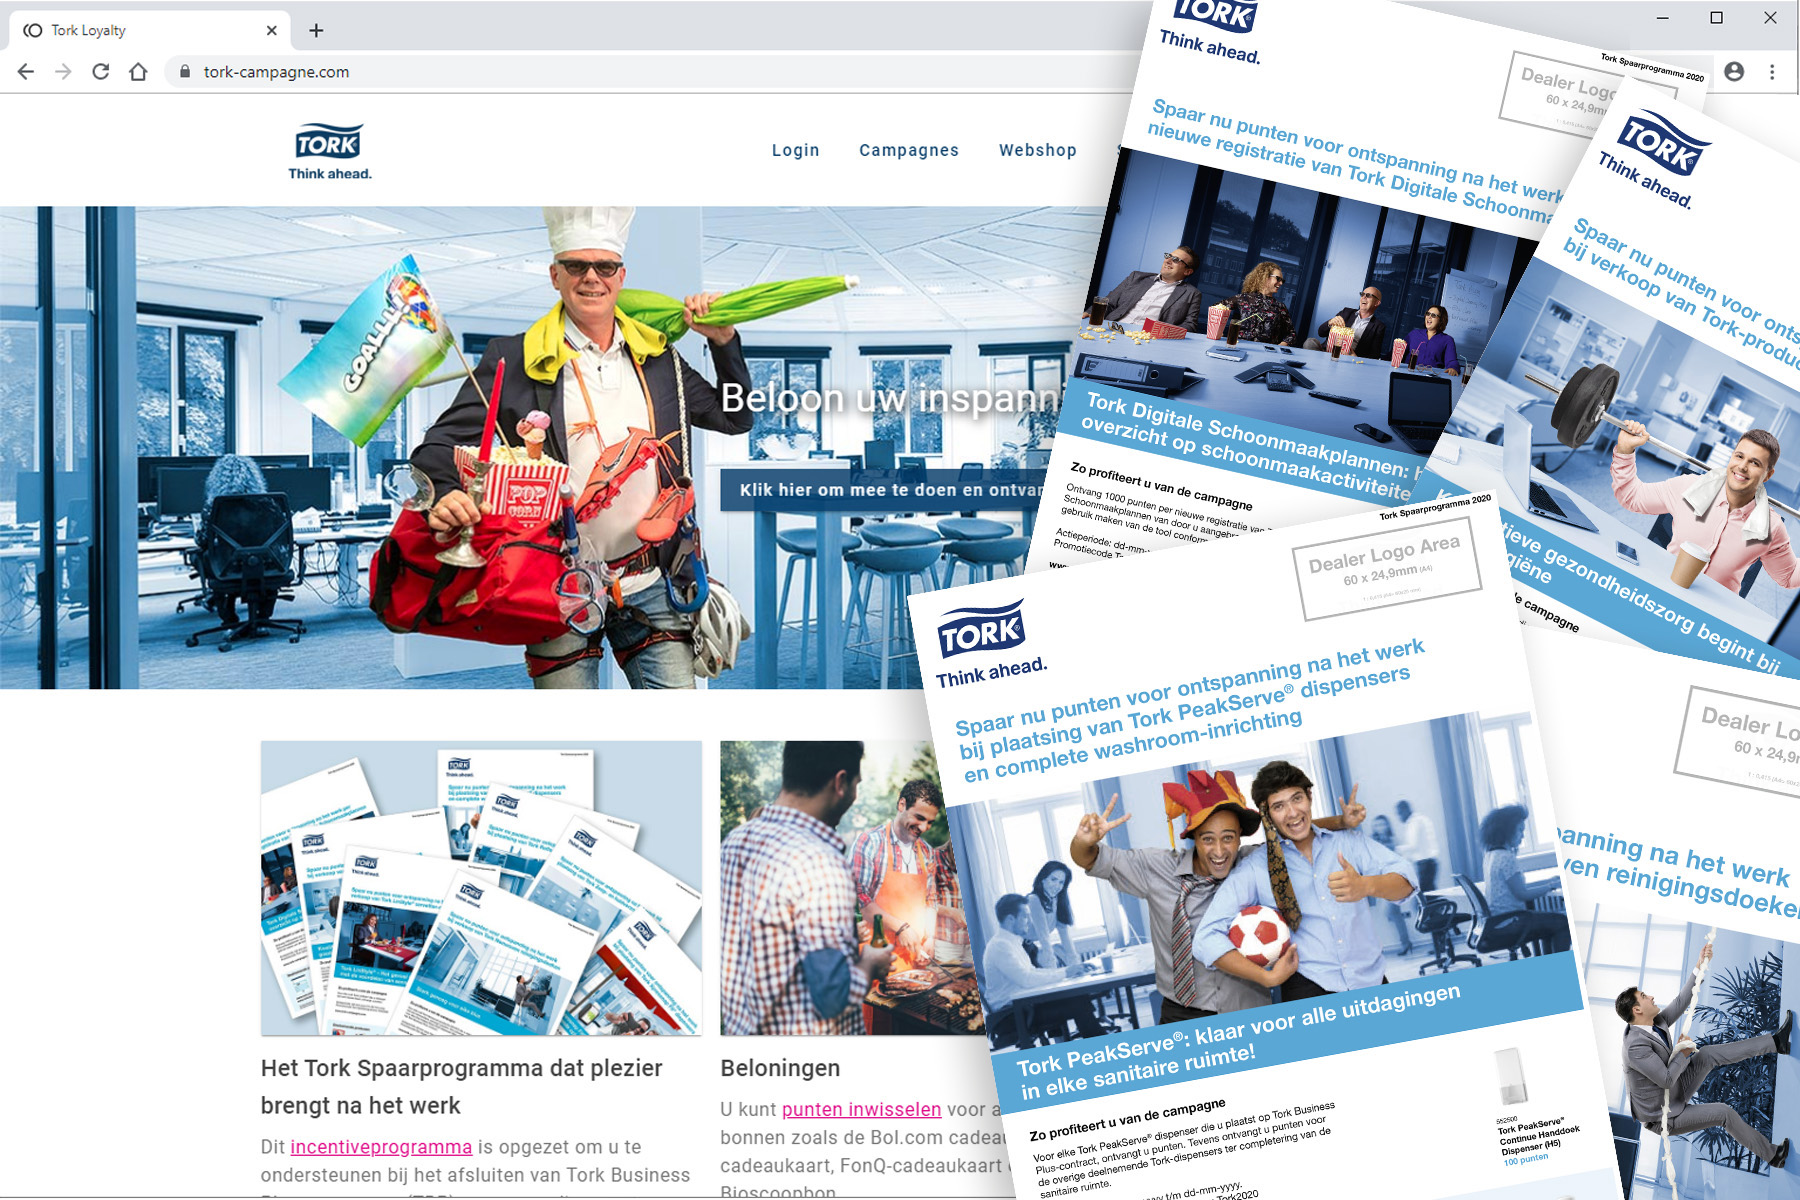 Centigrade - TORK-campagne.com, a Customer Loyalty Program